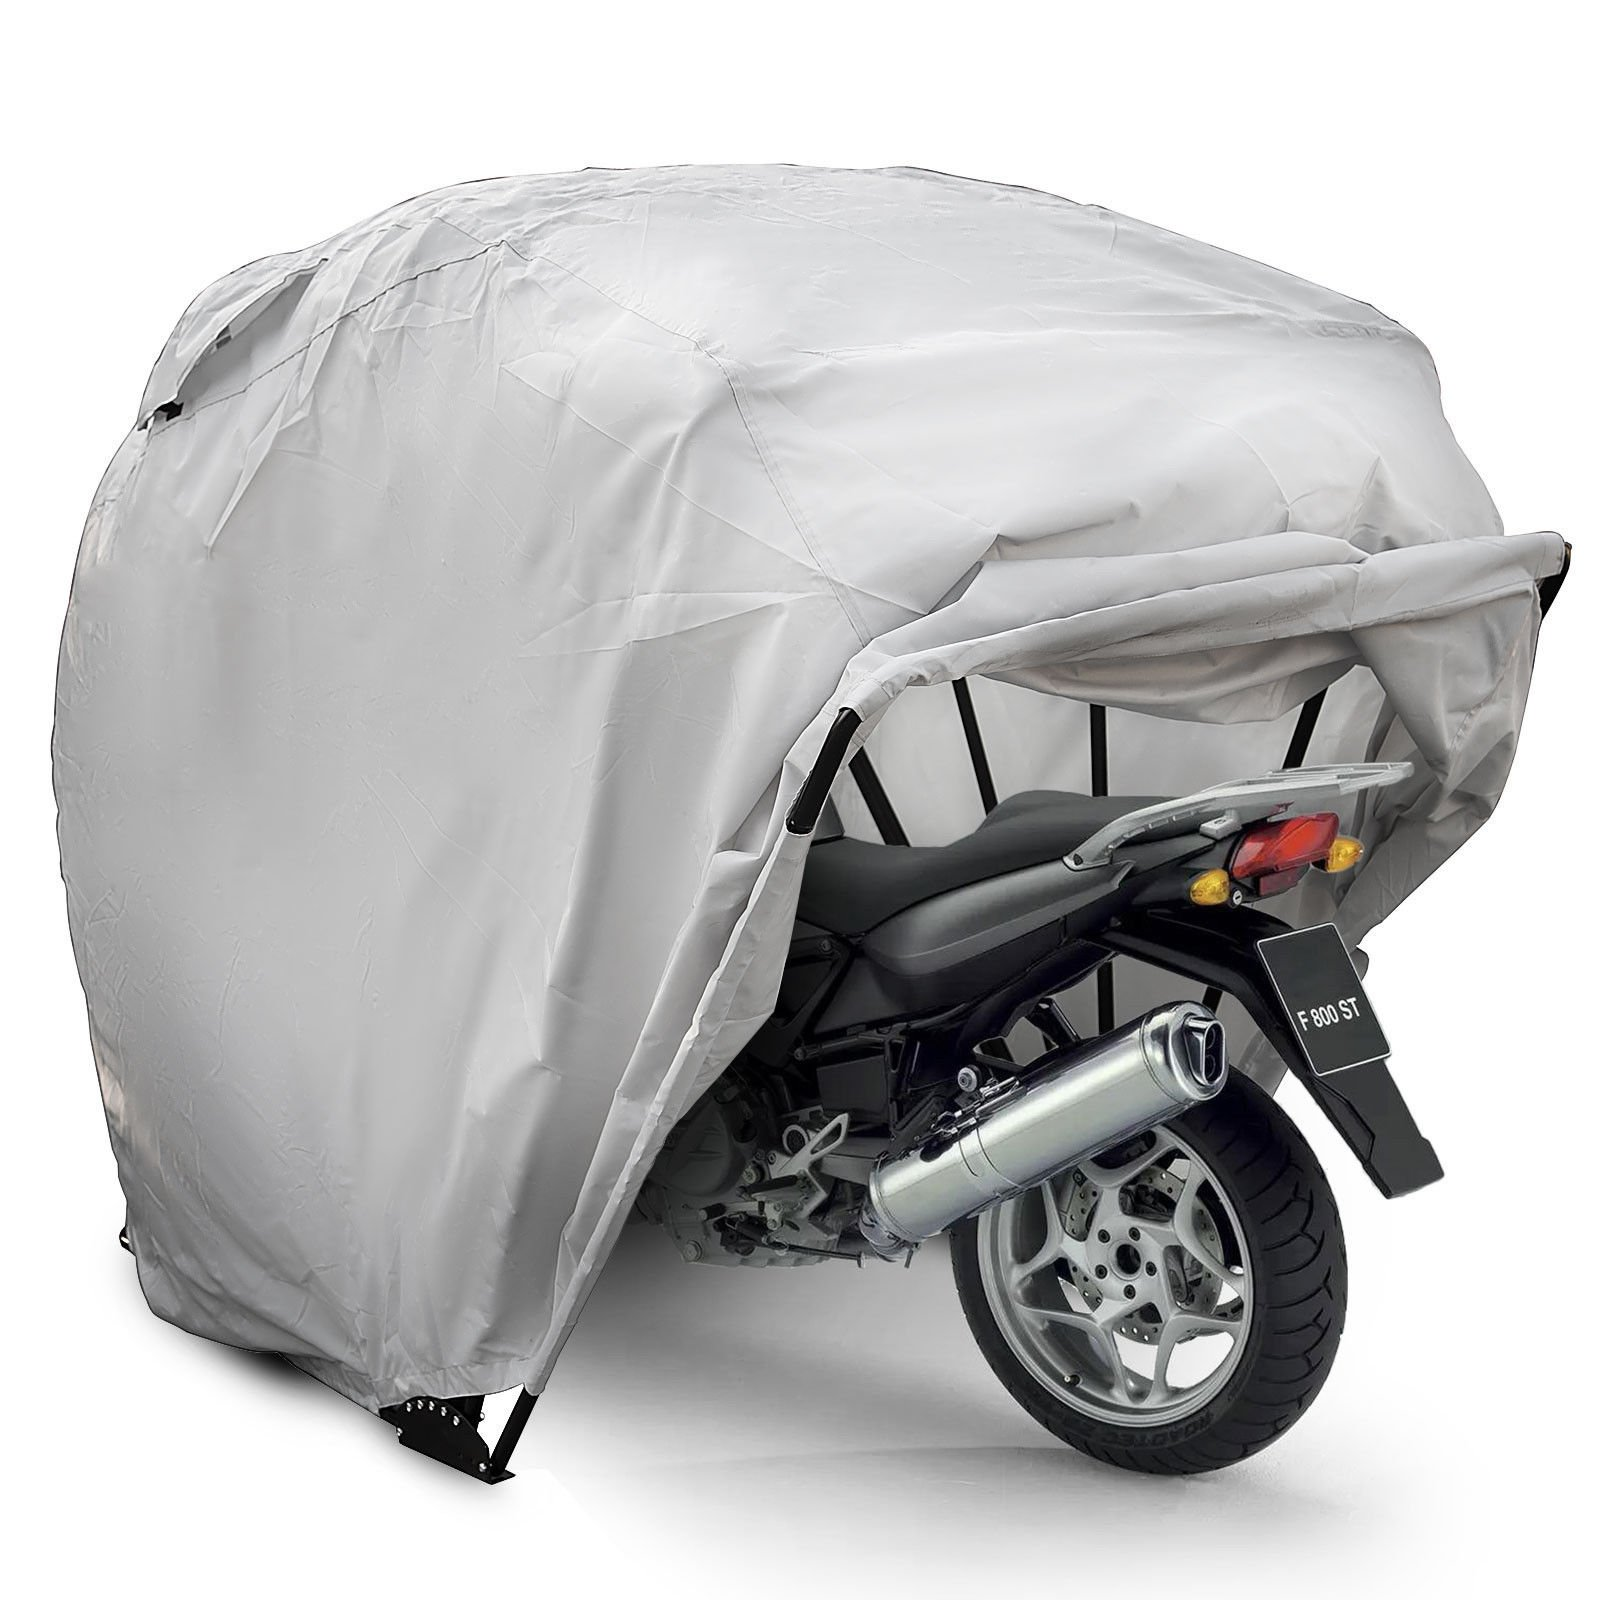 Happybuy Motorcycle Shelter Storage Waterproof Motorbike Storage Tent Oxford 600D Motorcycle Shelter Shed Fit Most Motorcycles (Large)